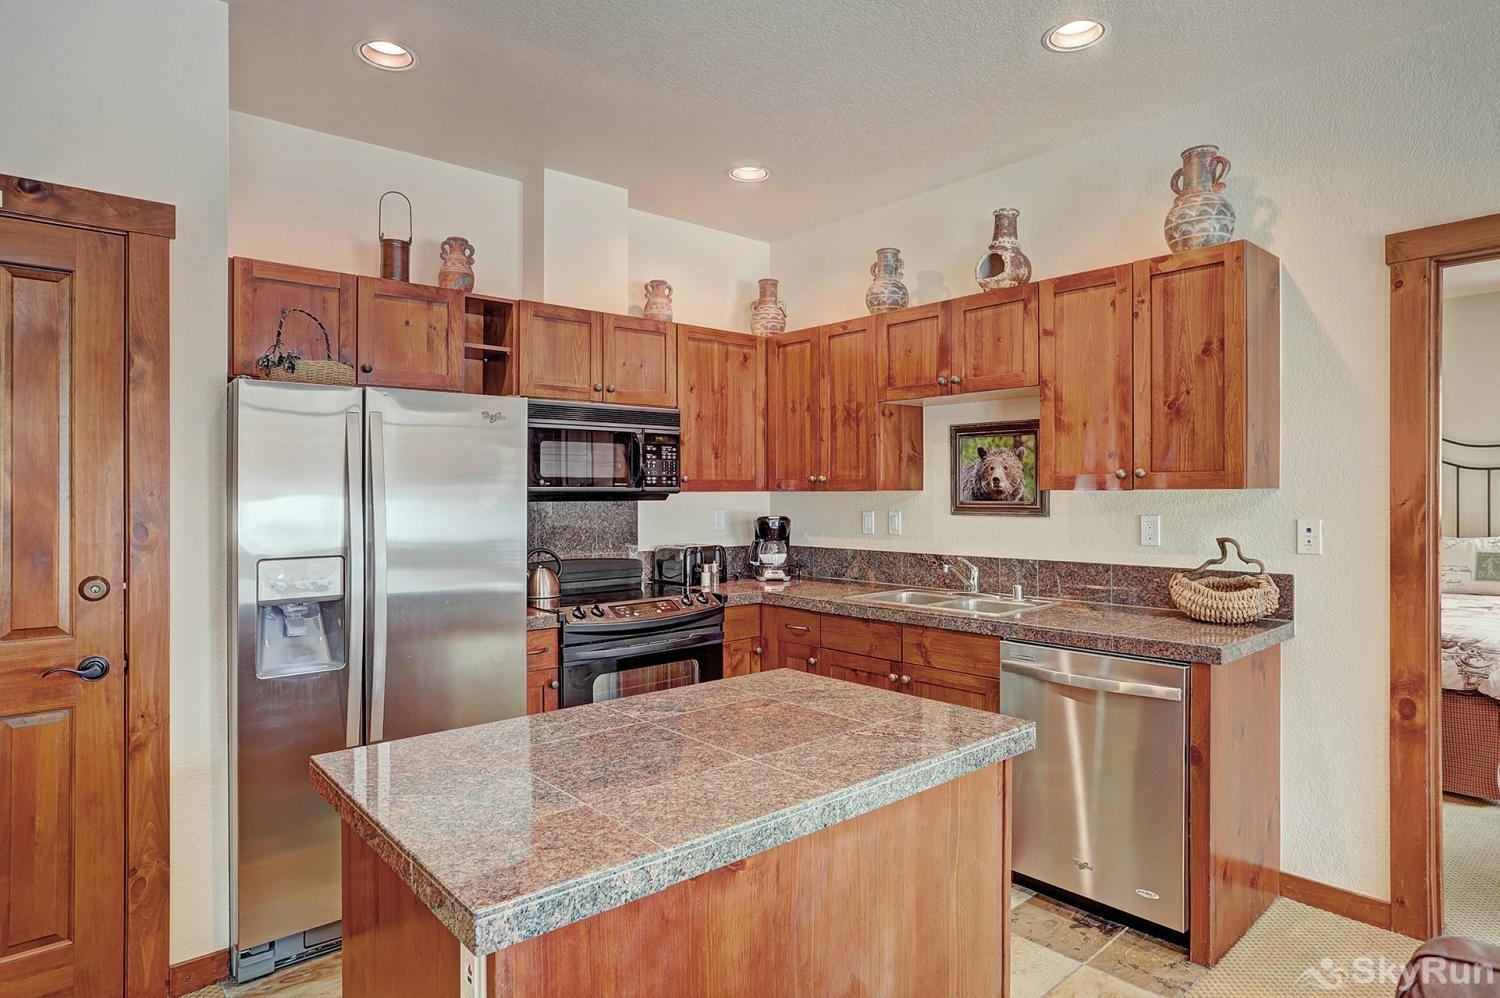 Main Street Station 2203 Fully equipped kitchen updated with stainless steel appliances